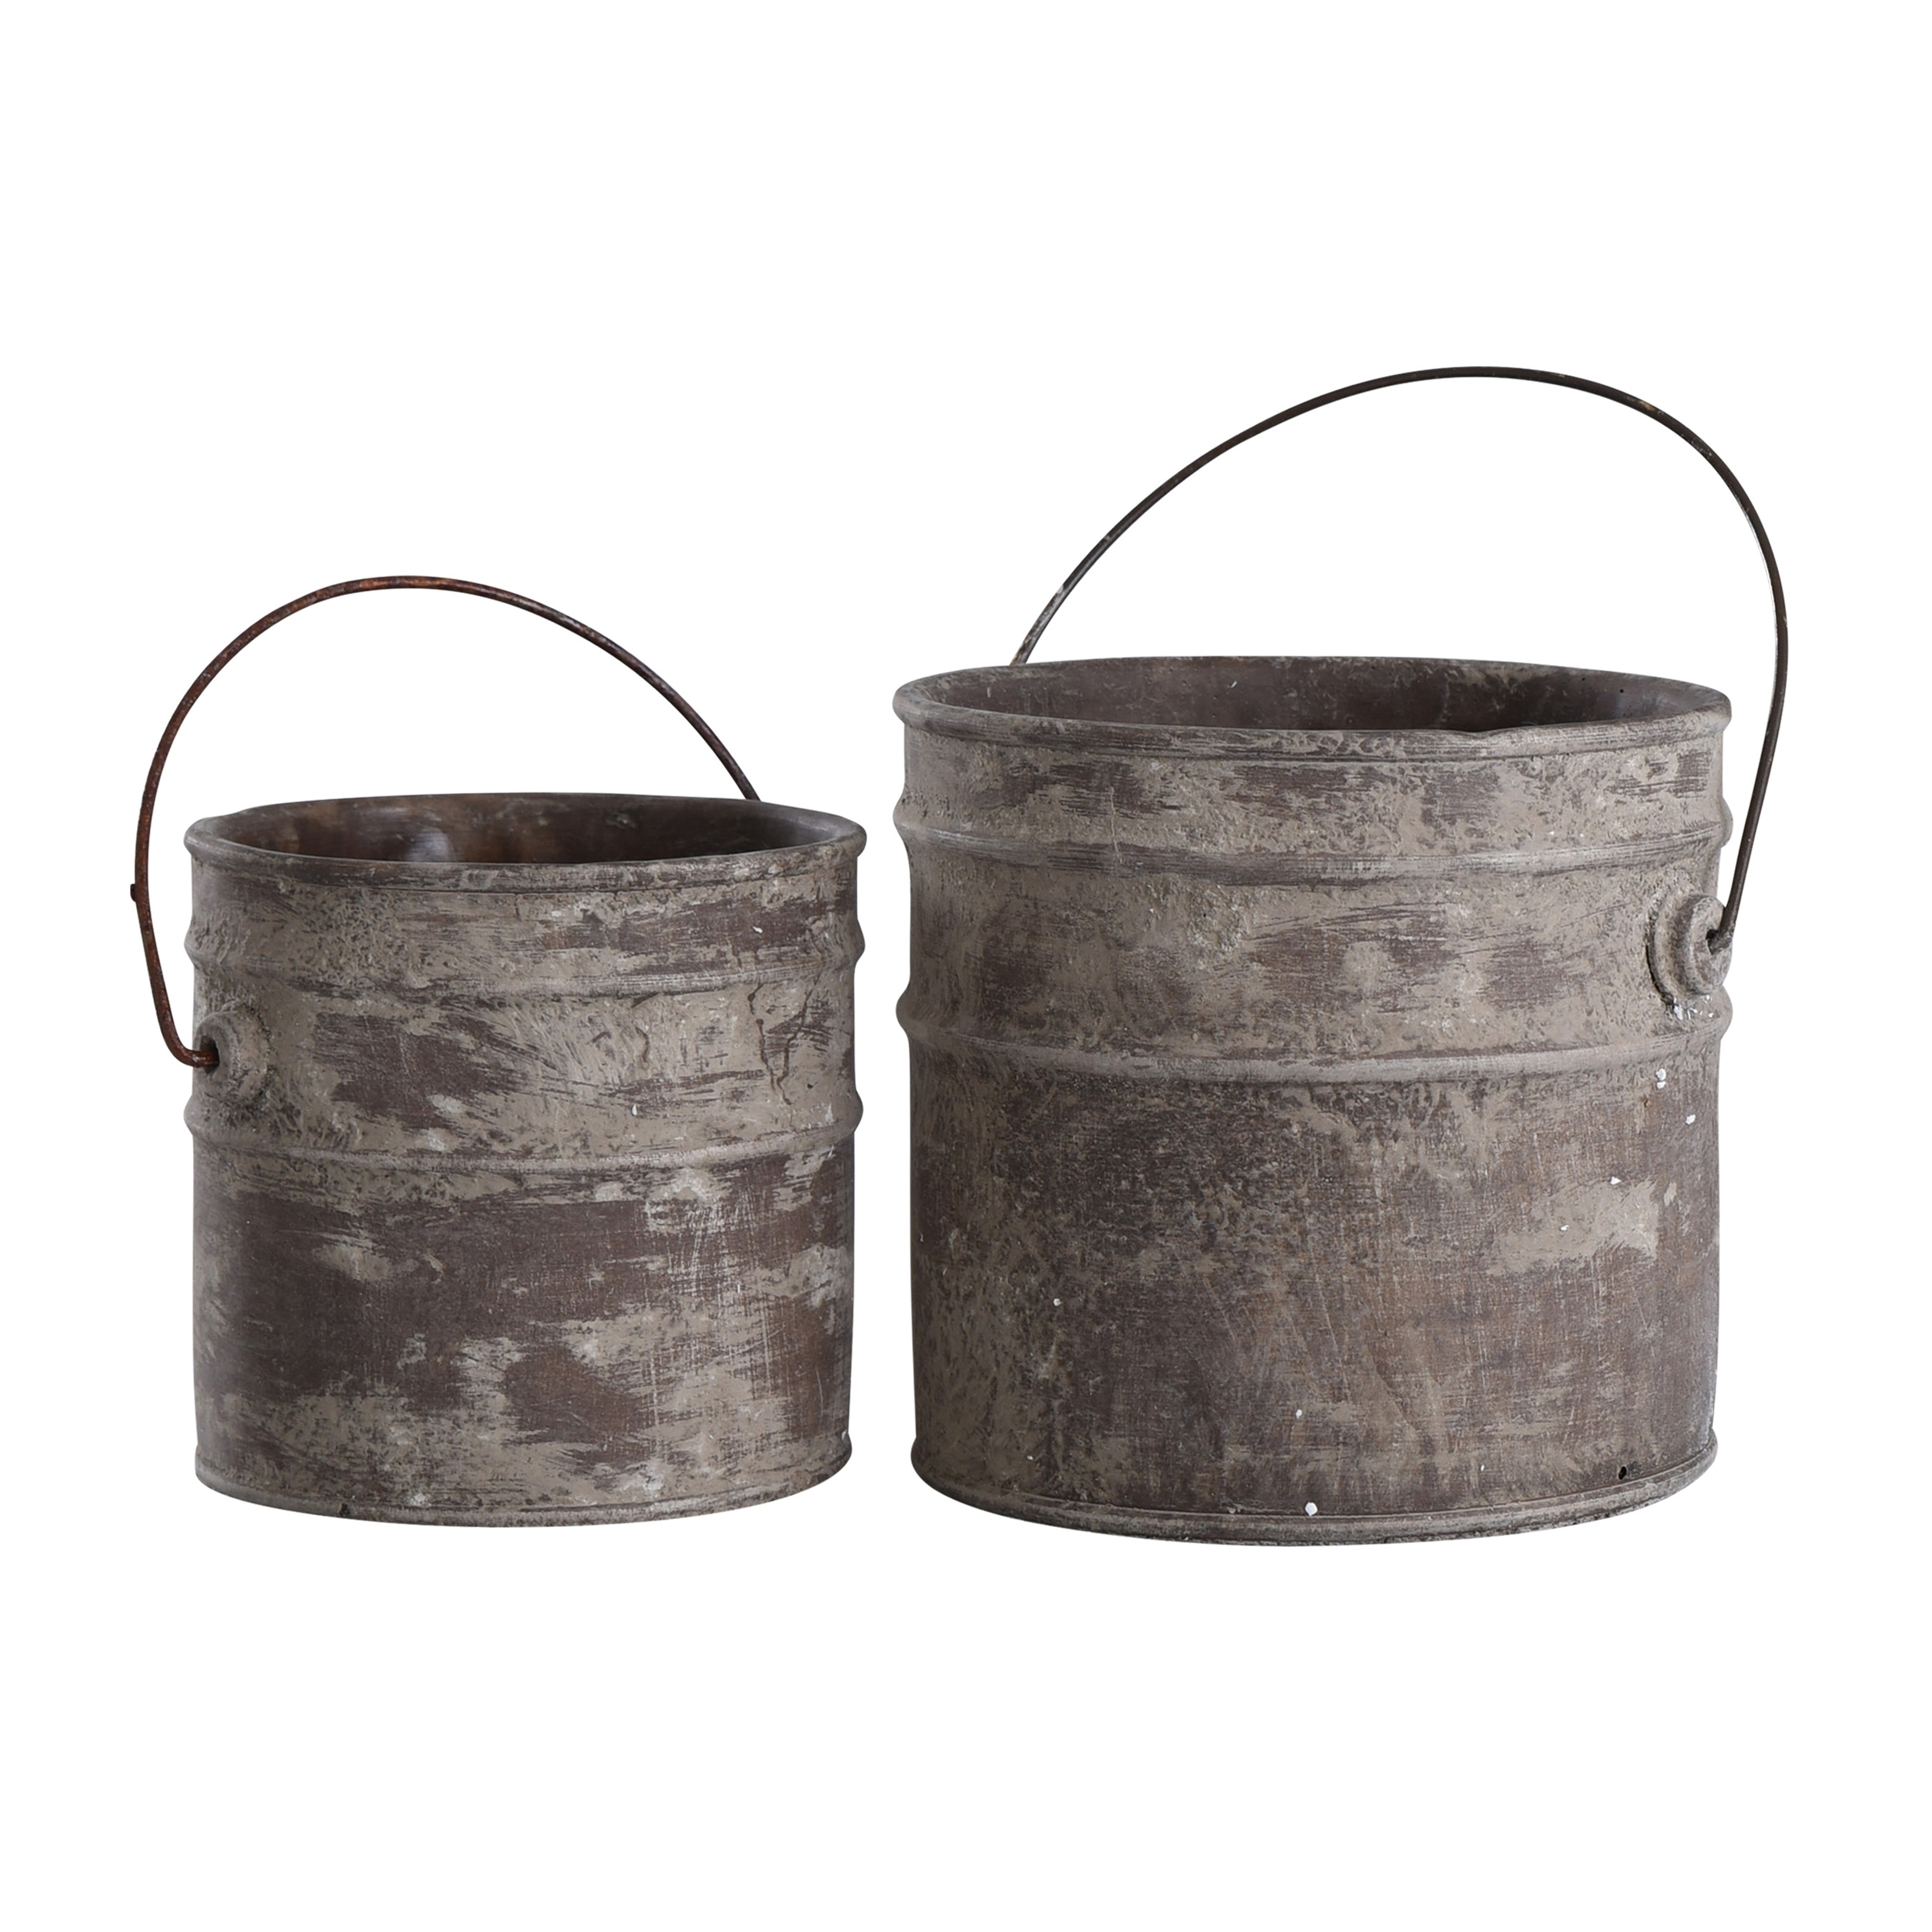 Onley Collection of Concreate Buckets with Wire Handles (Set of Two)